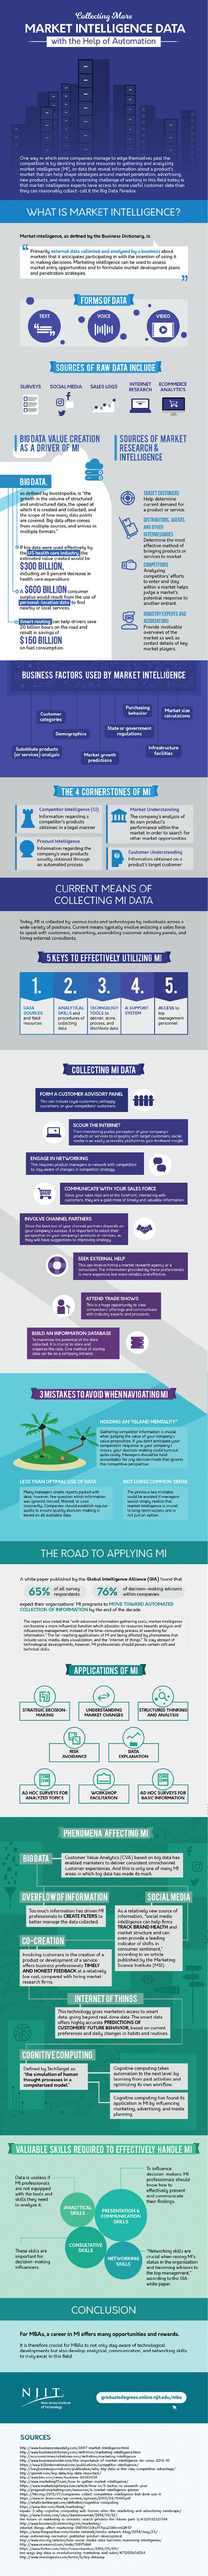 Marketing Intelligence Infographic